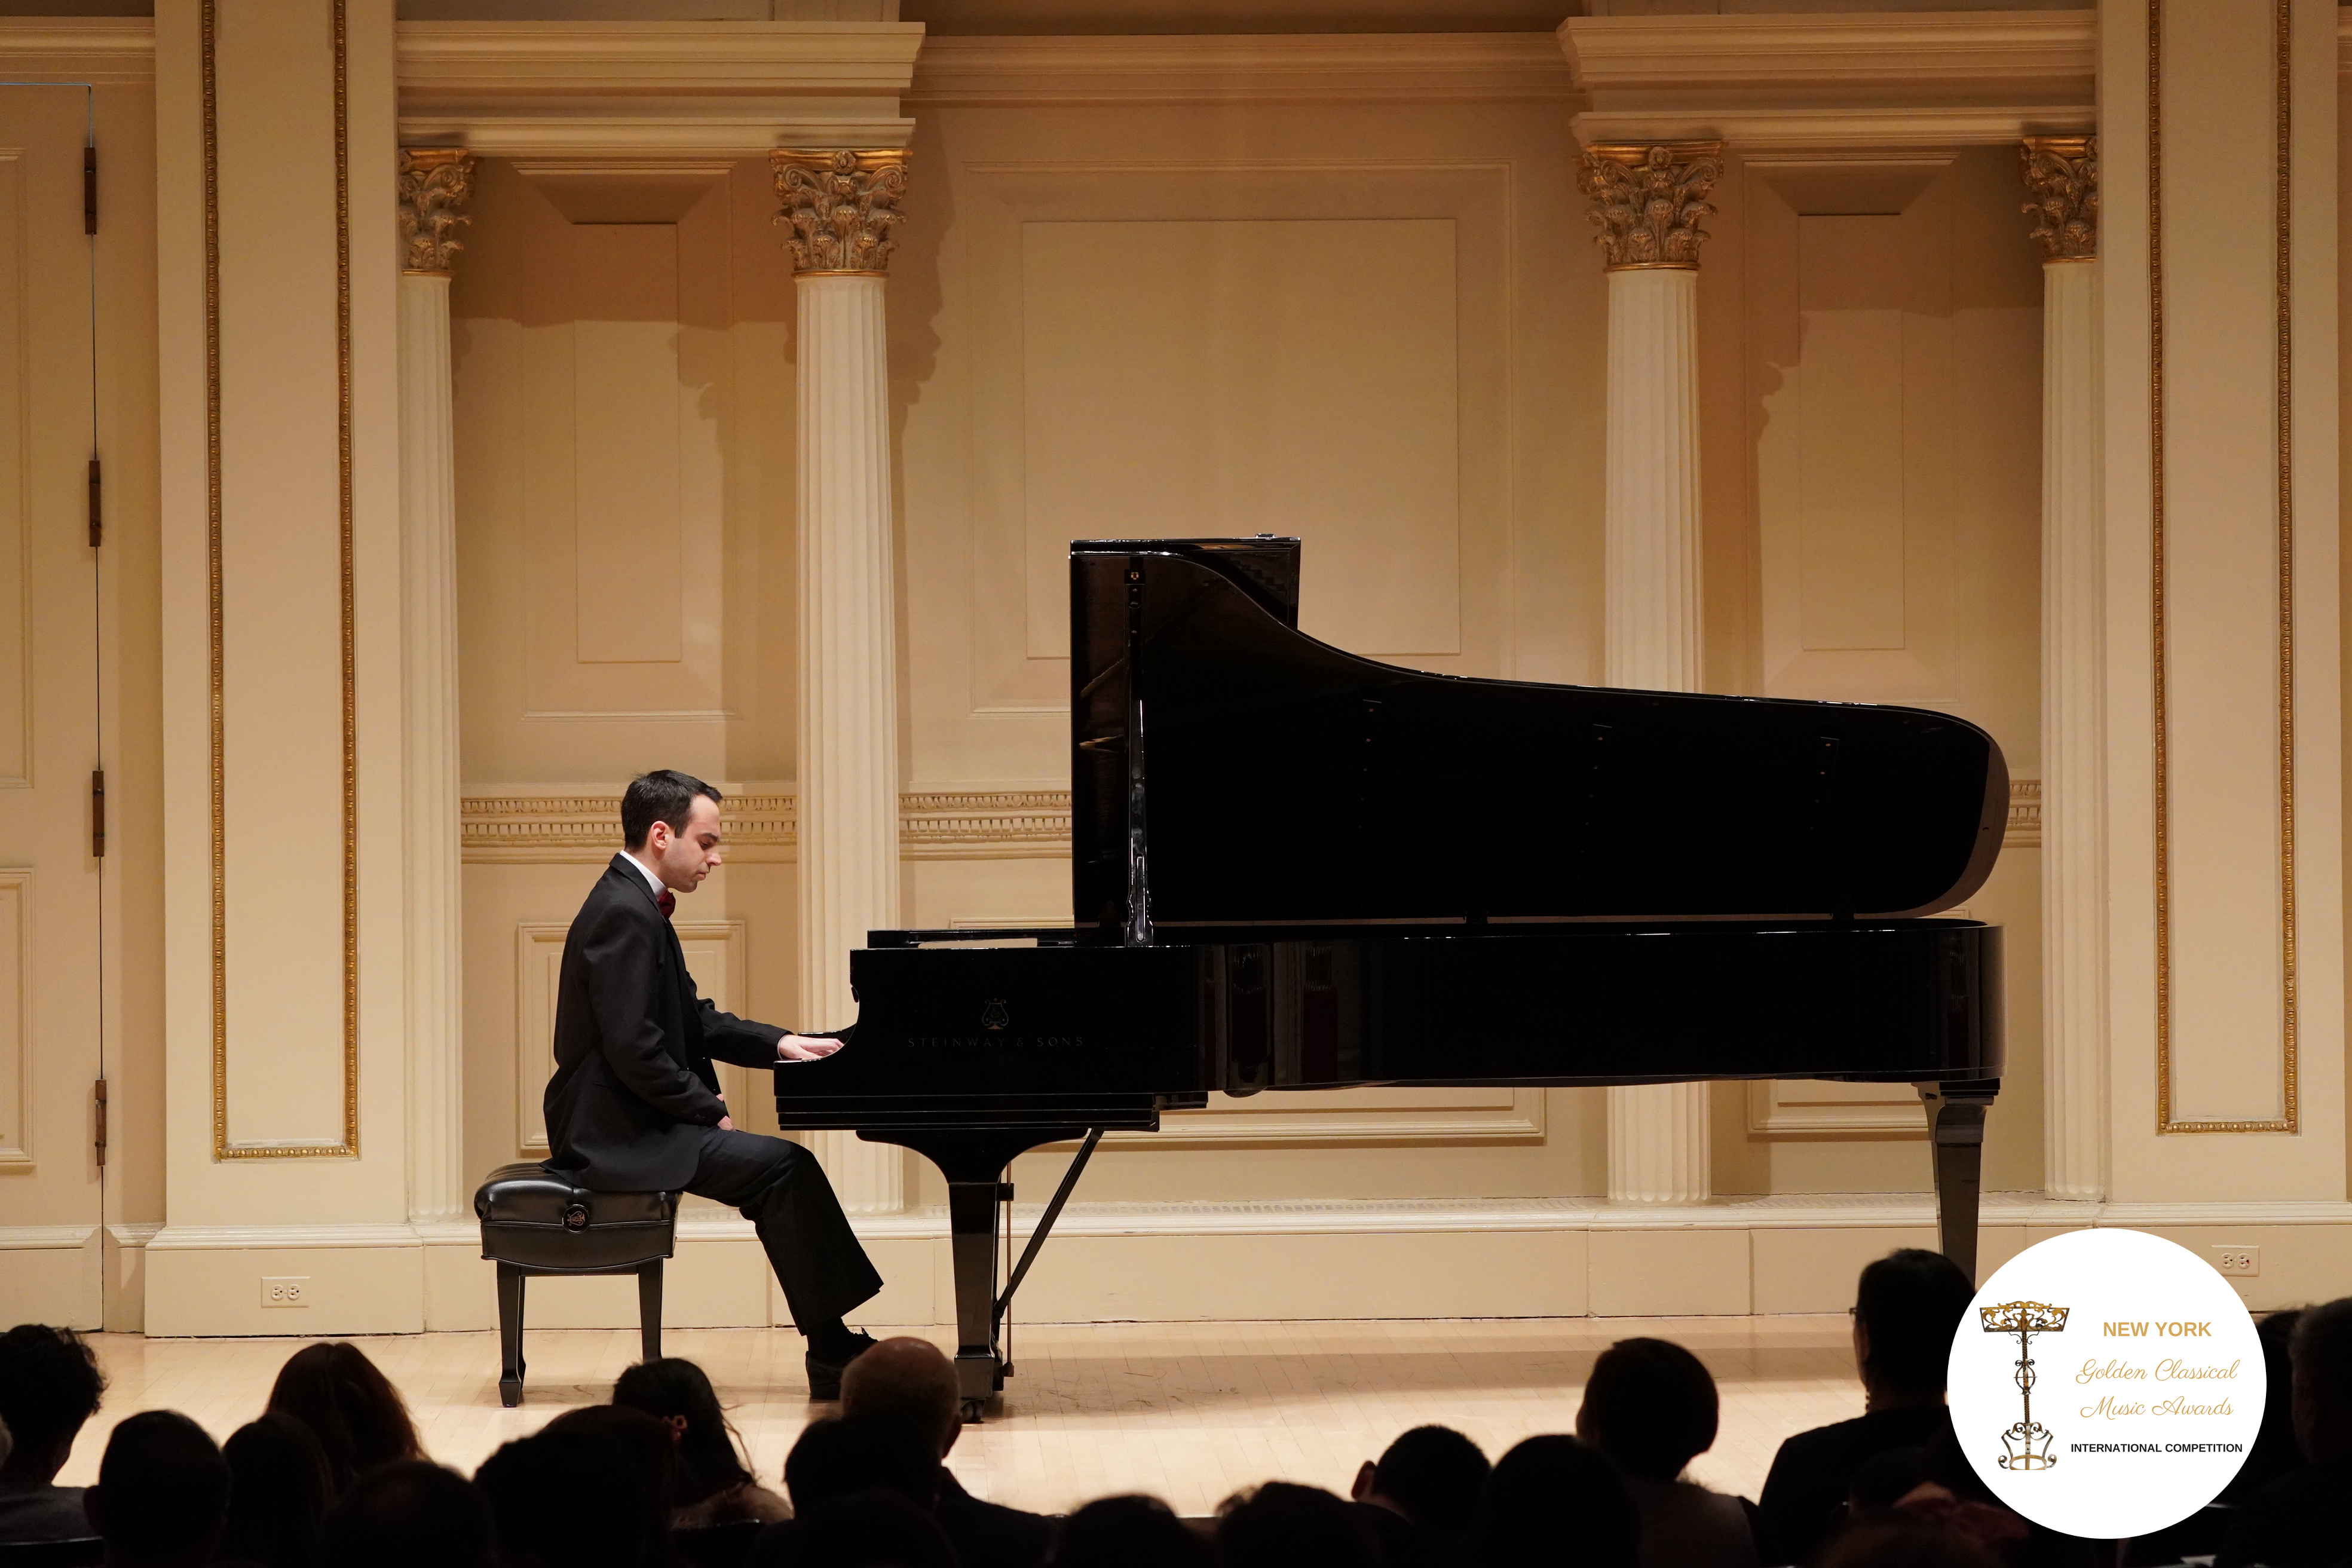 Performing at Carnegie Hall in New York